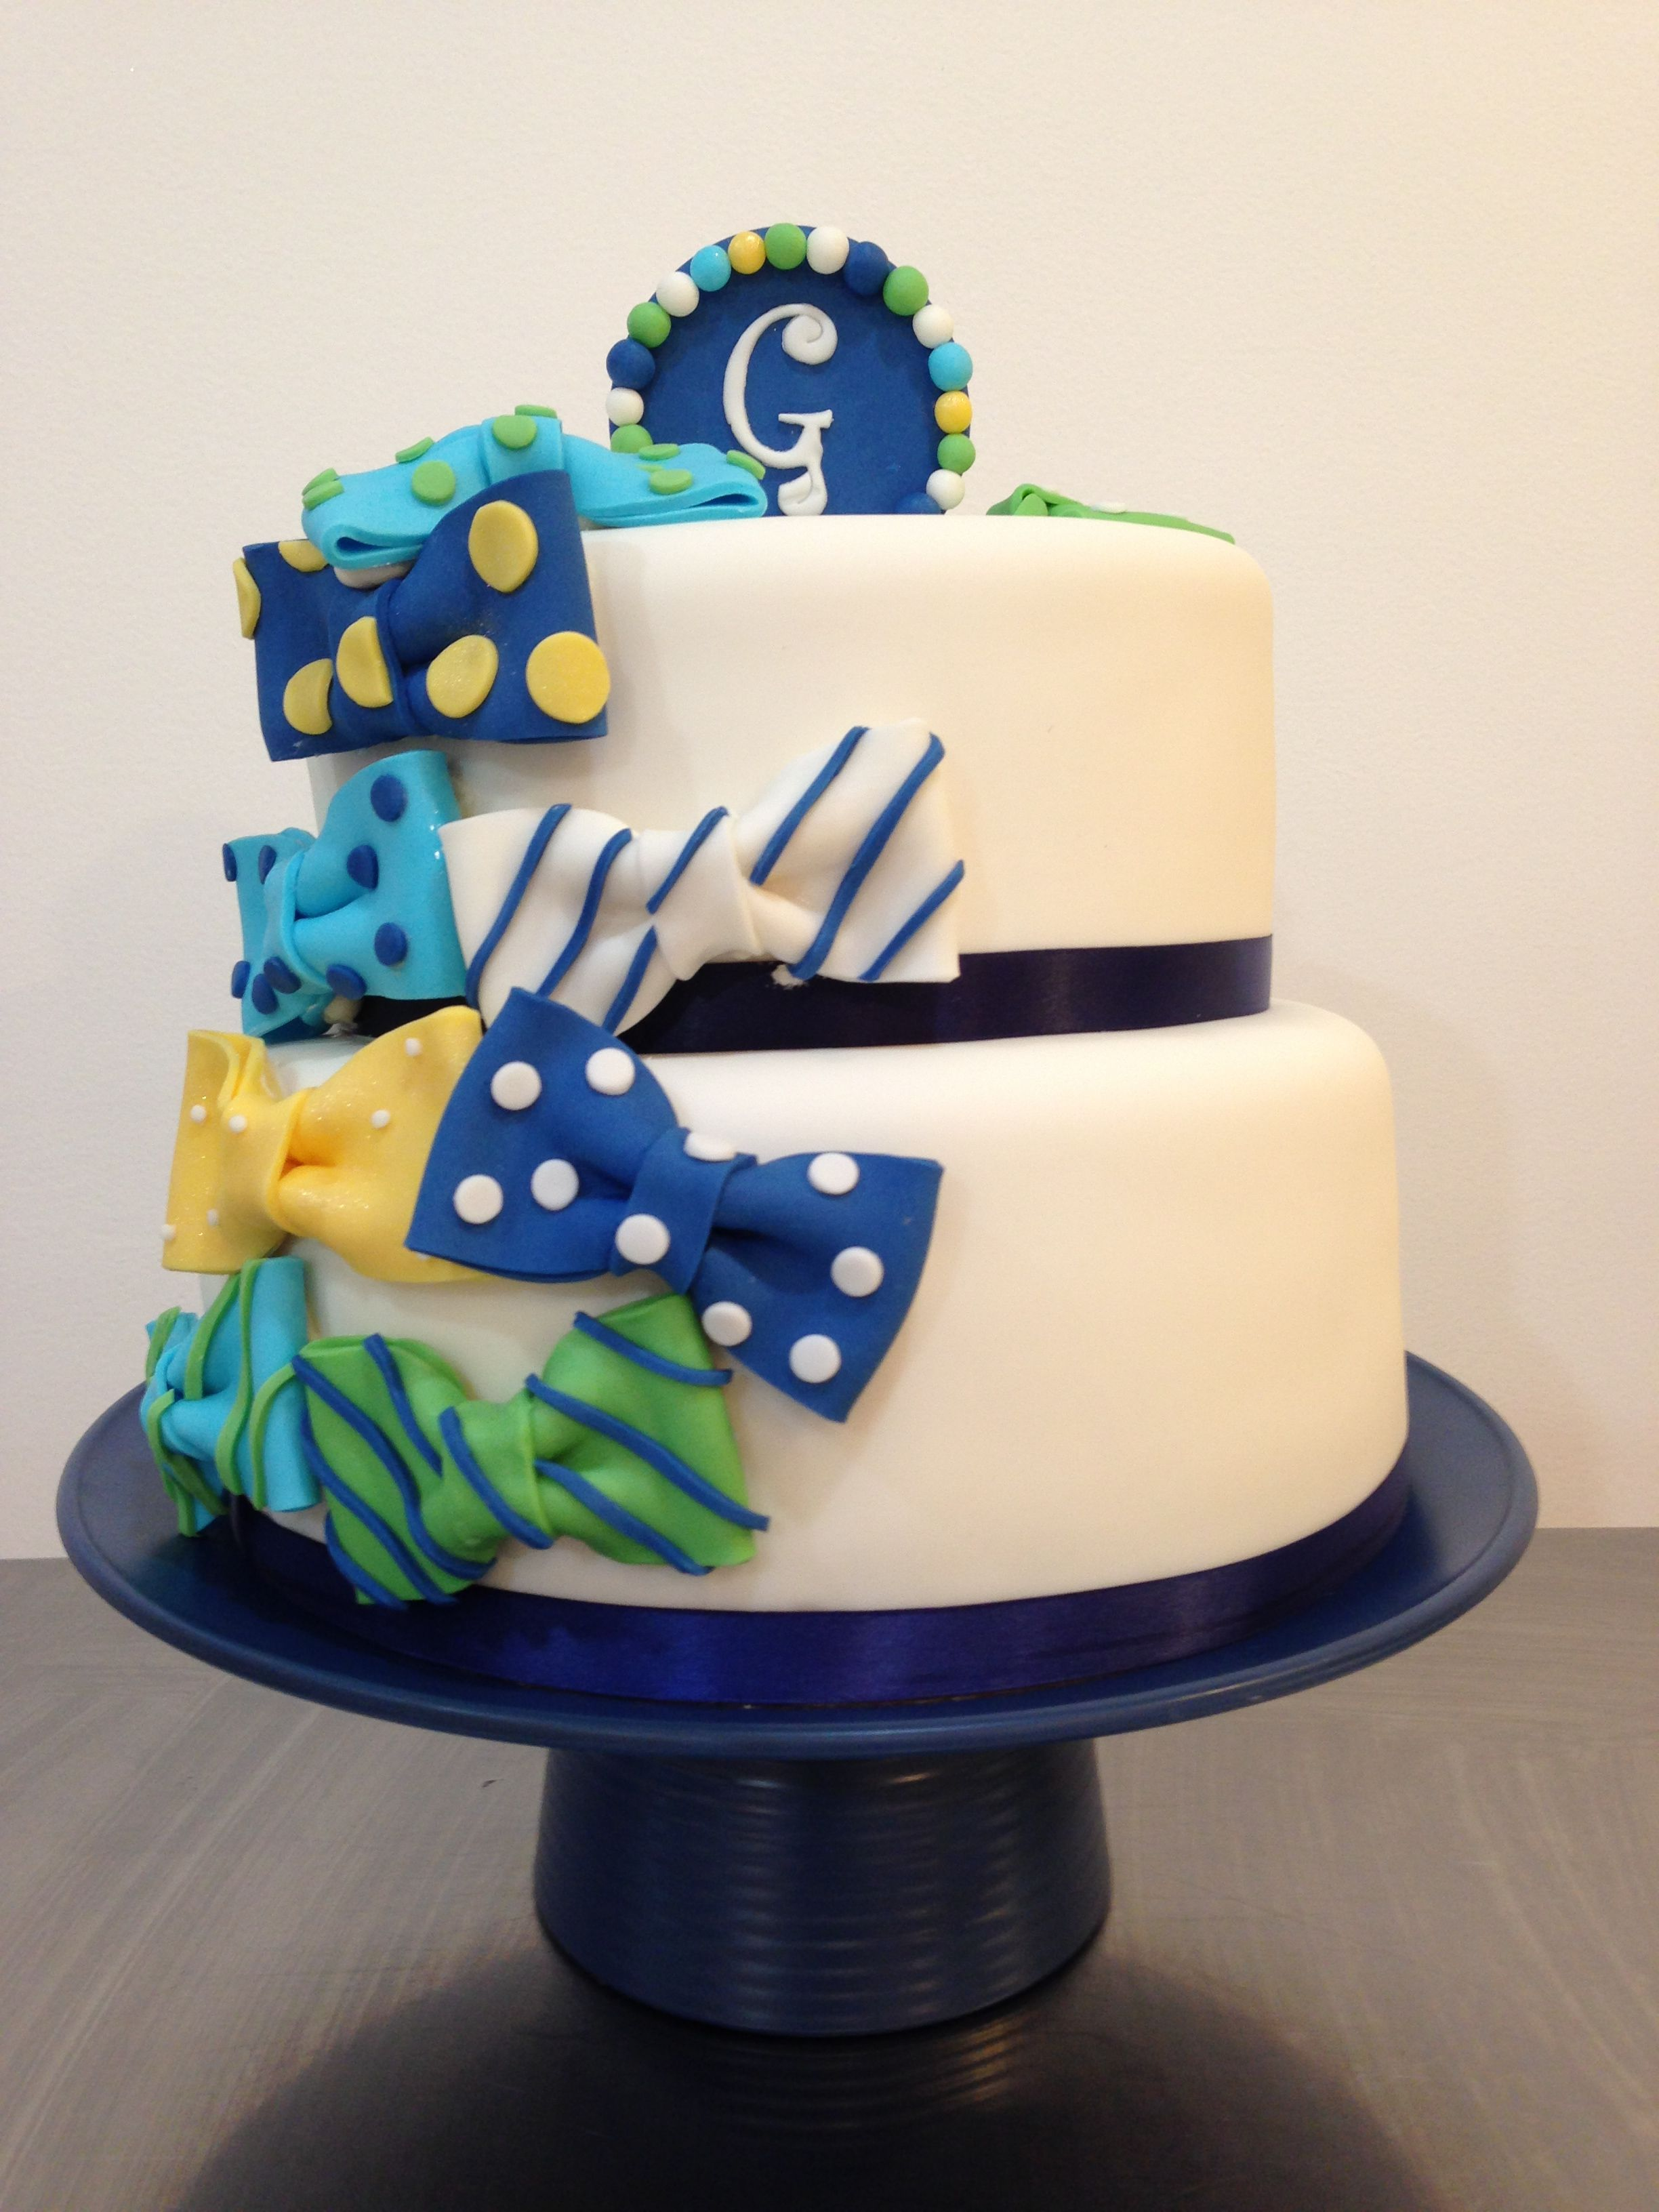 Outstanding Bow Tie Cake For A Baby Shower With Images Baby Shower Cakes Funny Birthday Cards Online Amentibdeldamsfinfo